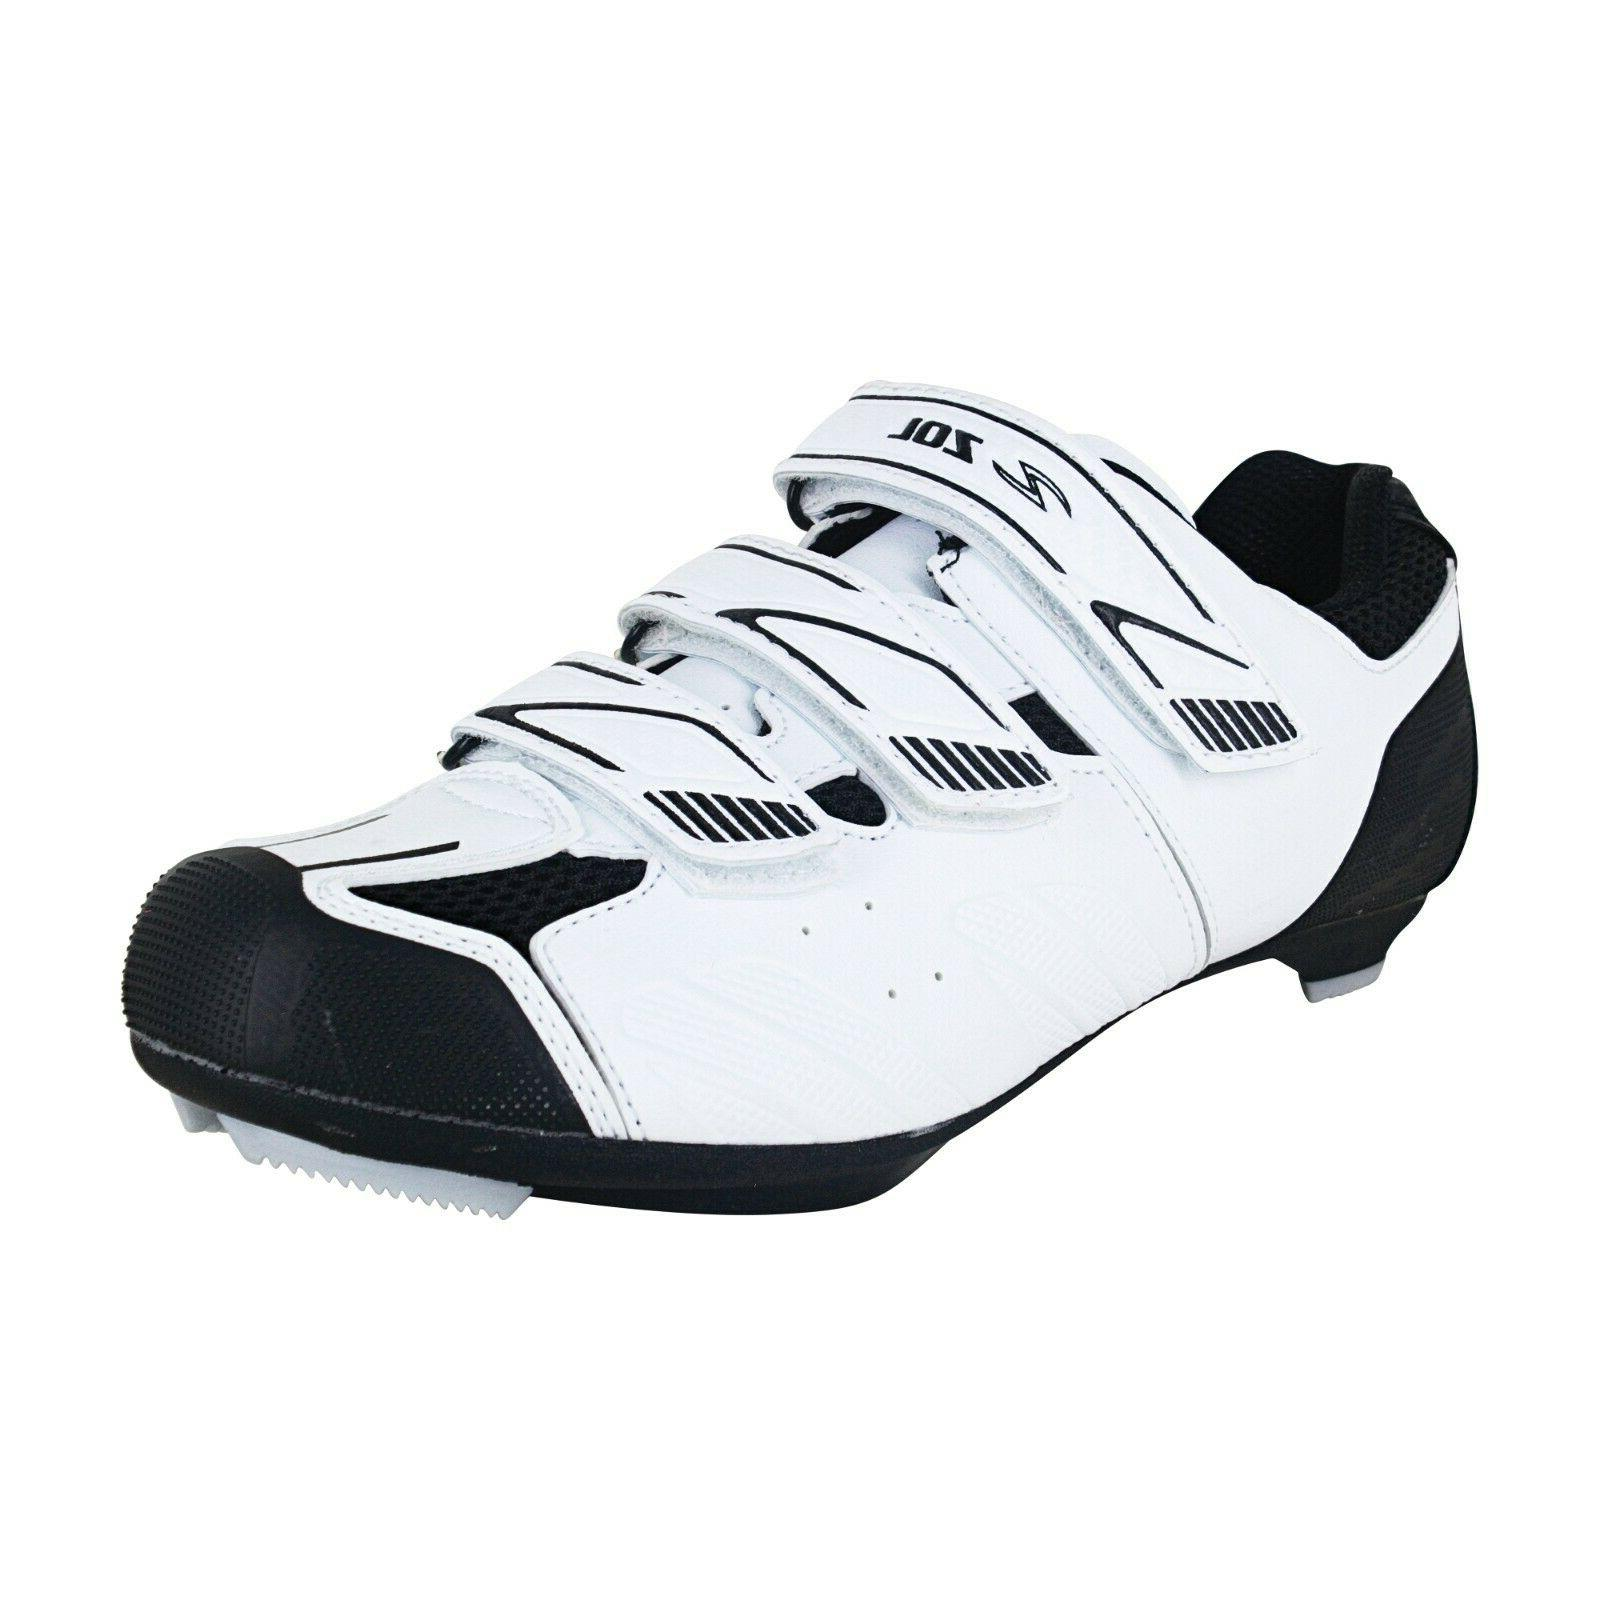 Zol Road Cycling Shoes with SPD